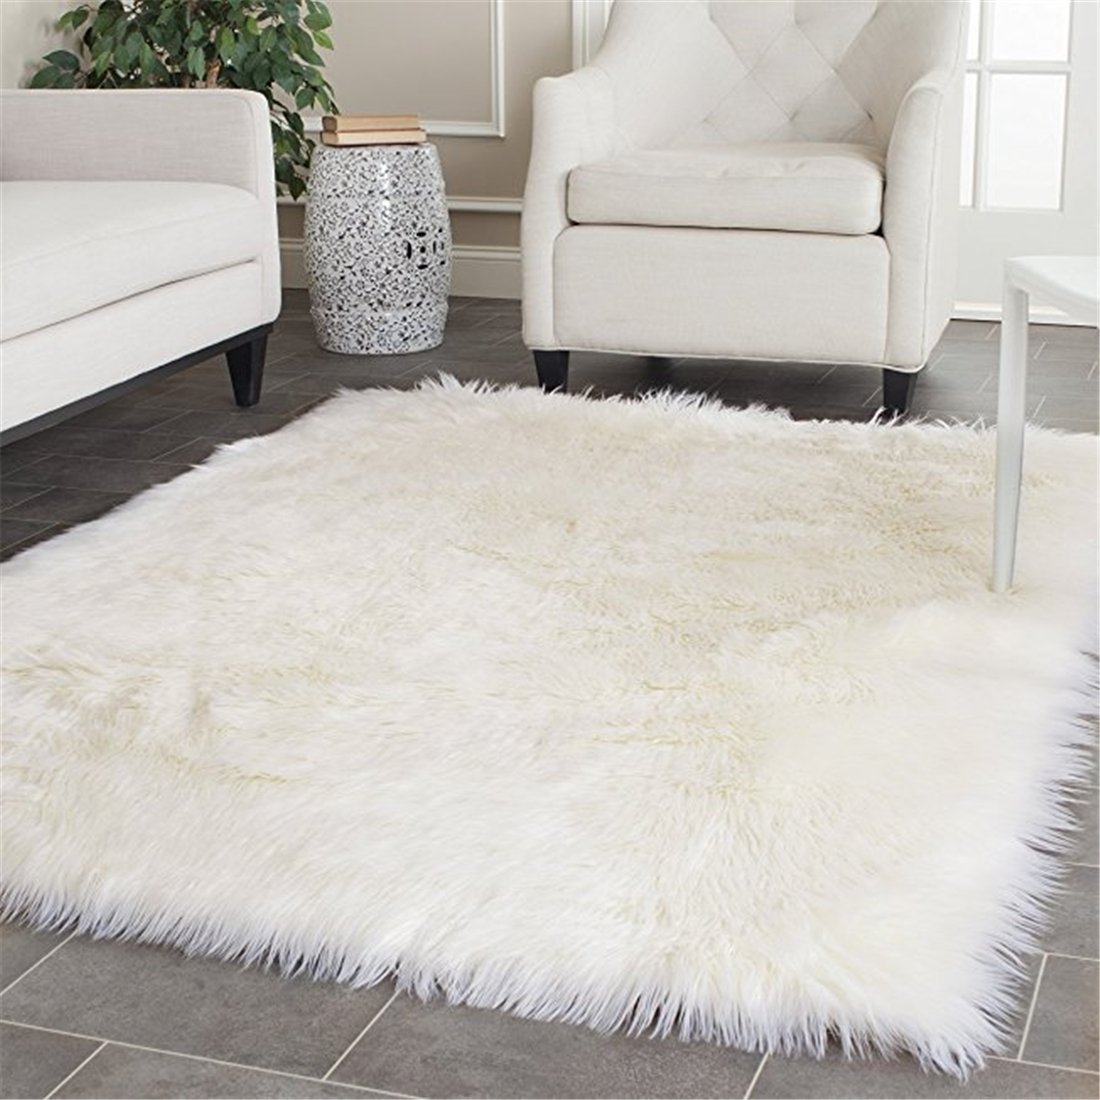 FurFurug Faux Silky Deluxe Sheepskin Area Shag Rug Children Play Carpet White,3x5ft